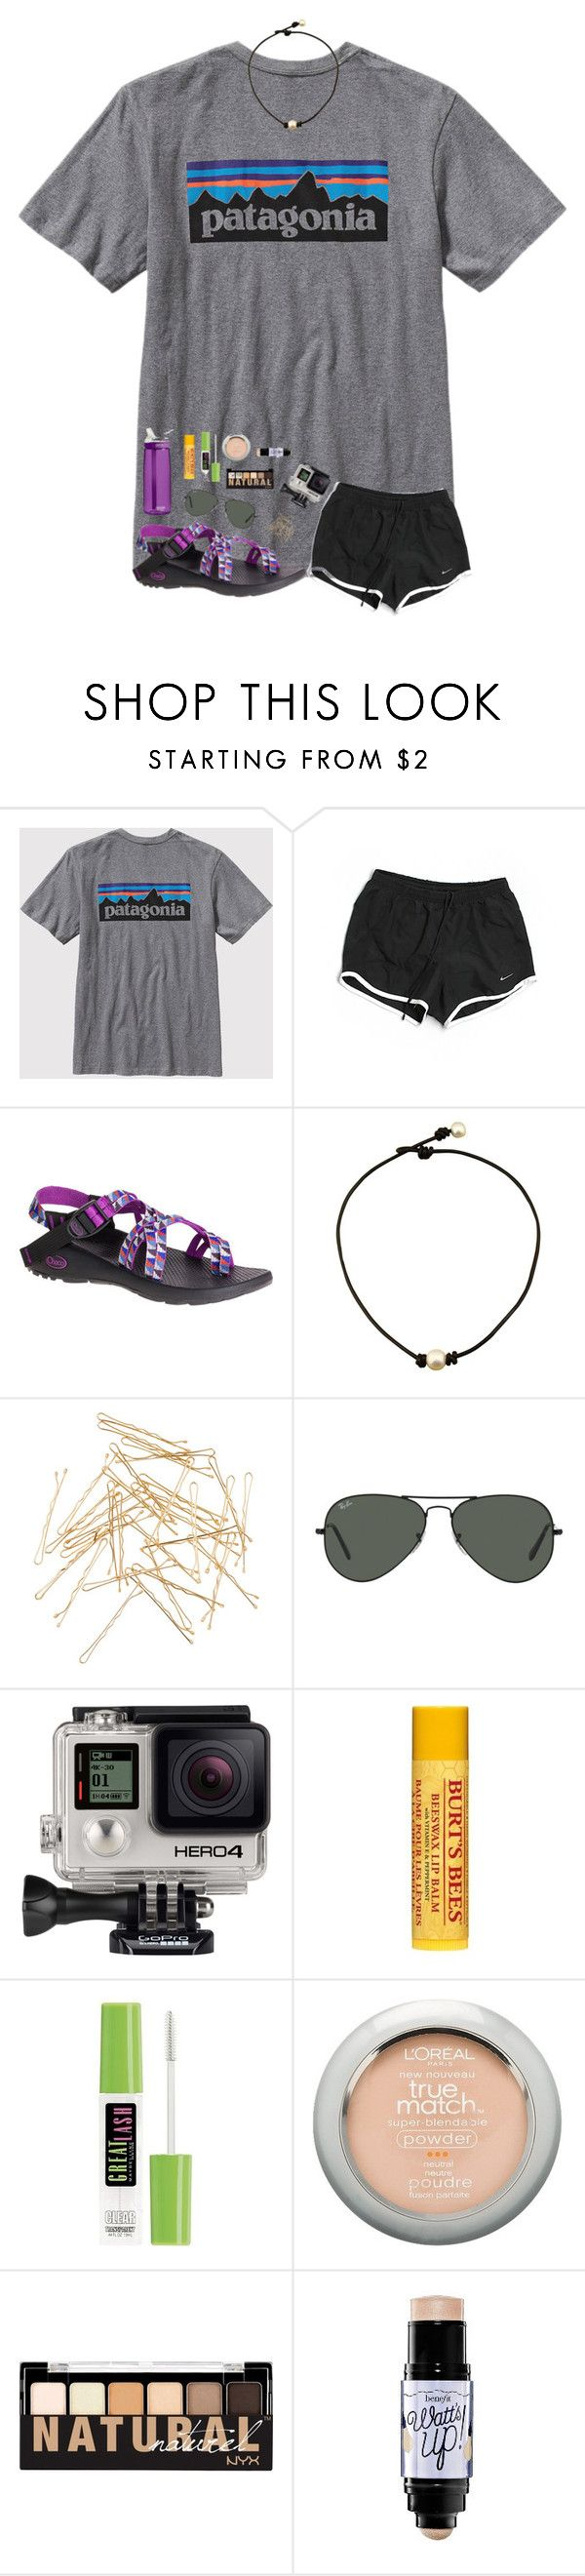 """""""Oml I hate boys RTD"""" by mmprep ❤ liked on Polyvore featuring Patagonia, NIKE, Chaco, Monki, Ray-Ban, GoPro, Burt's Bees, Maybelline, L'Oréal Paris and NYX"""